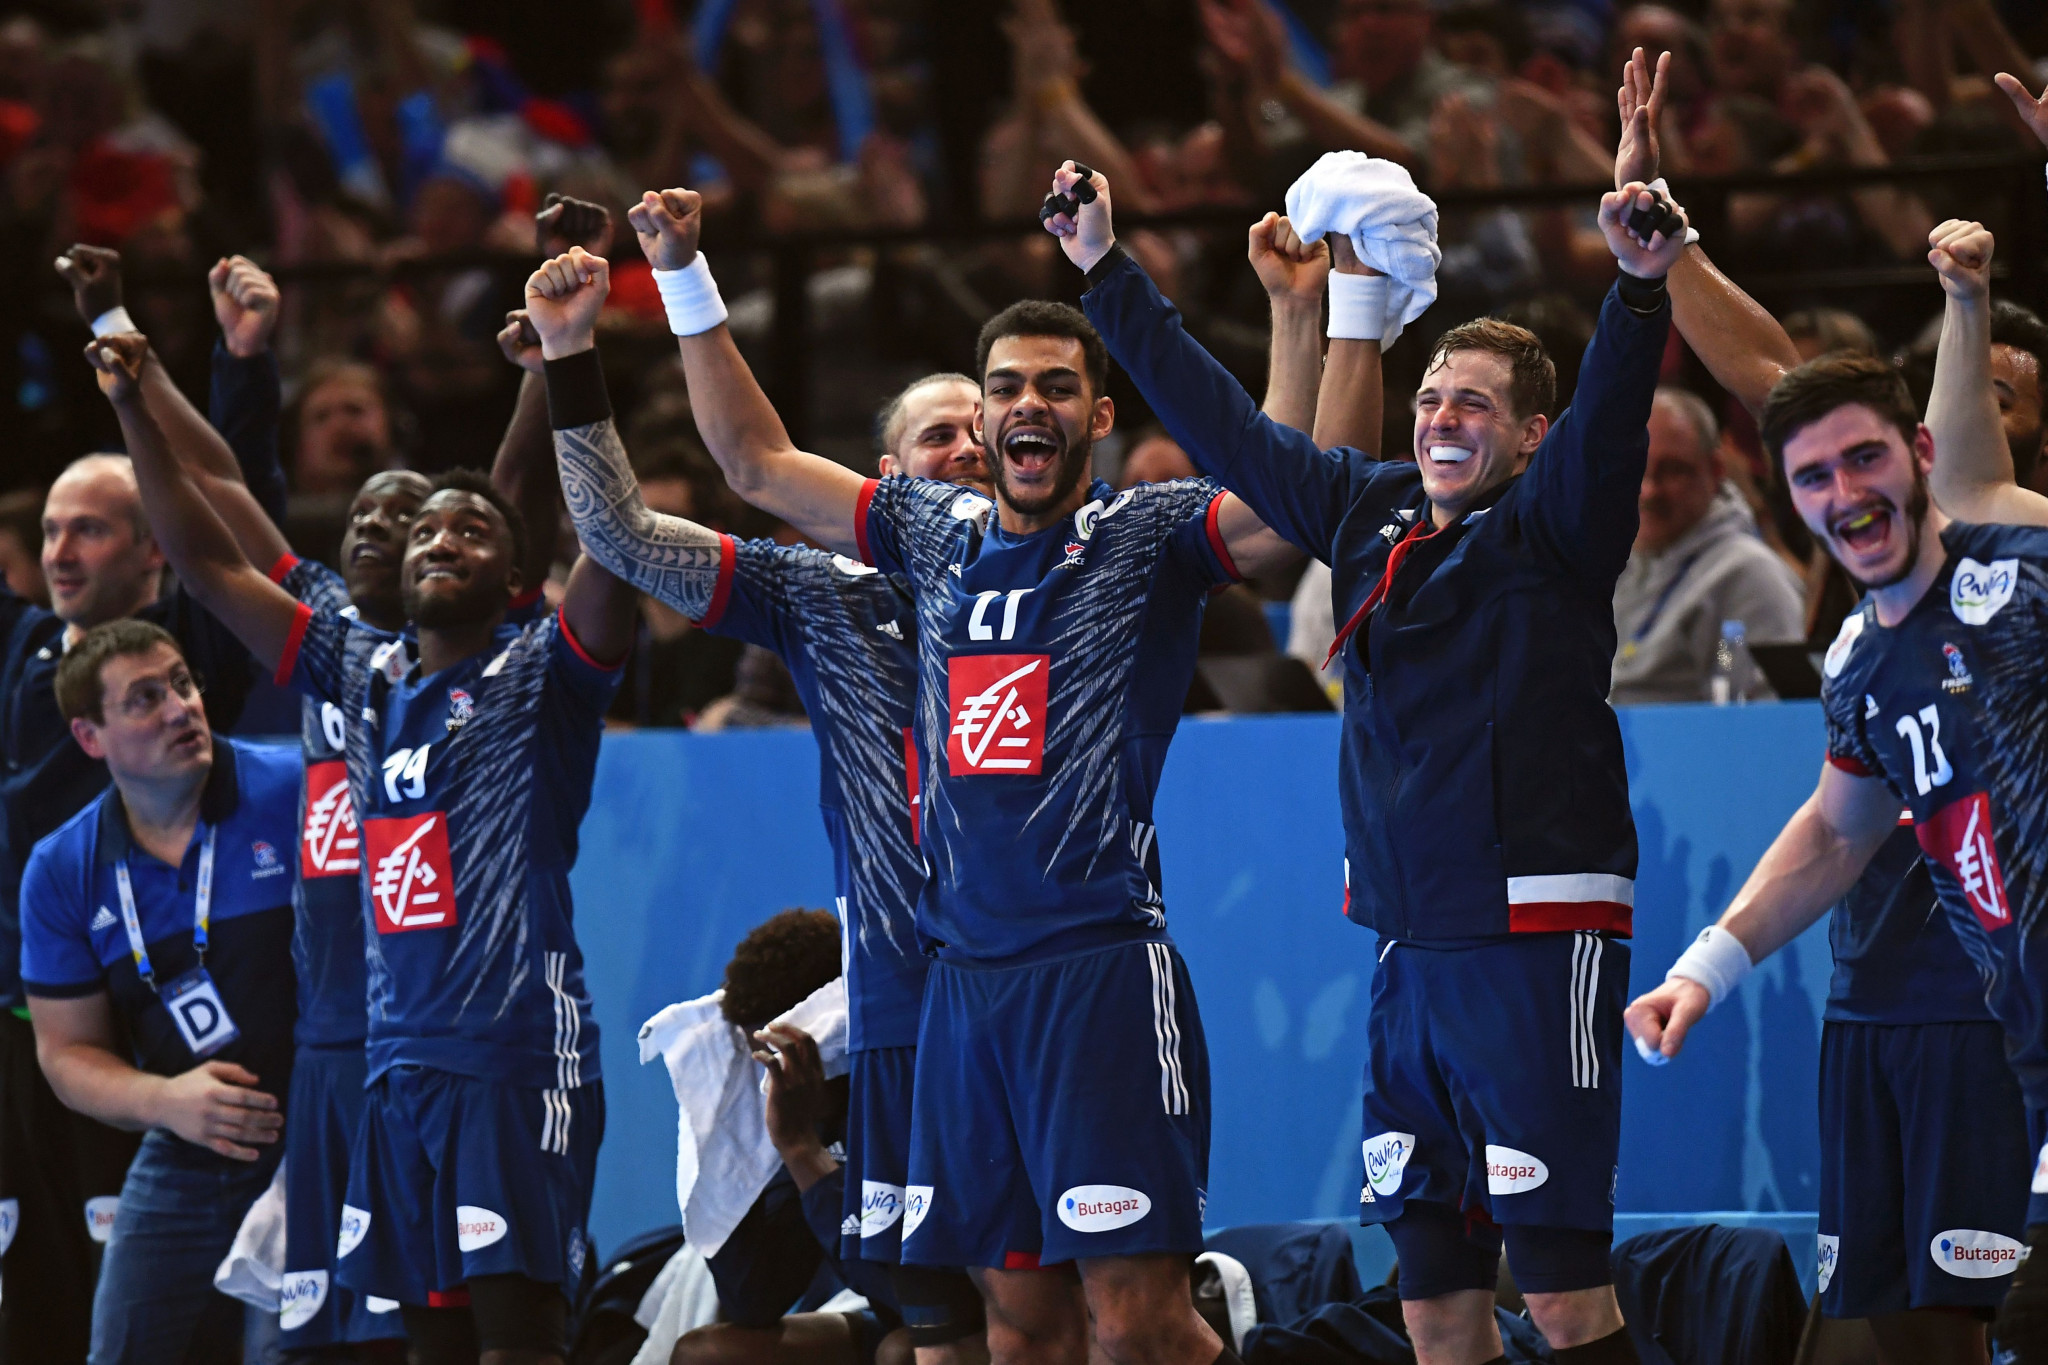 International Handball Federation to increase number of teams competing at World Championships